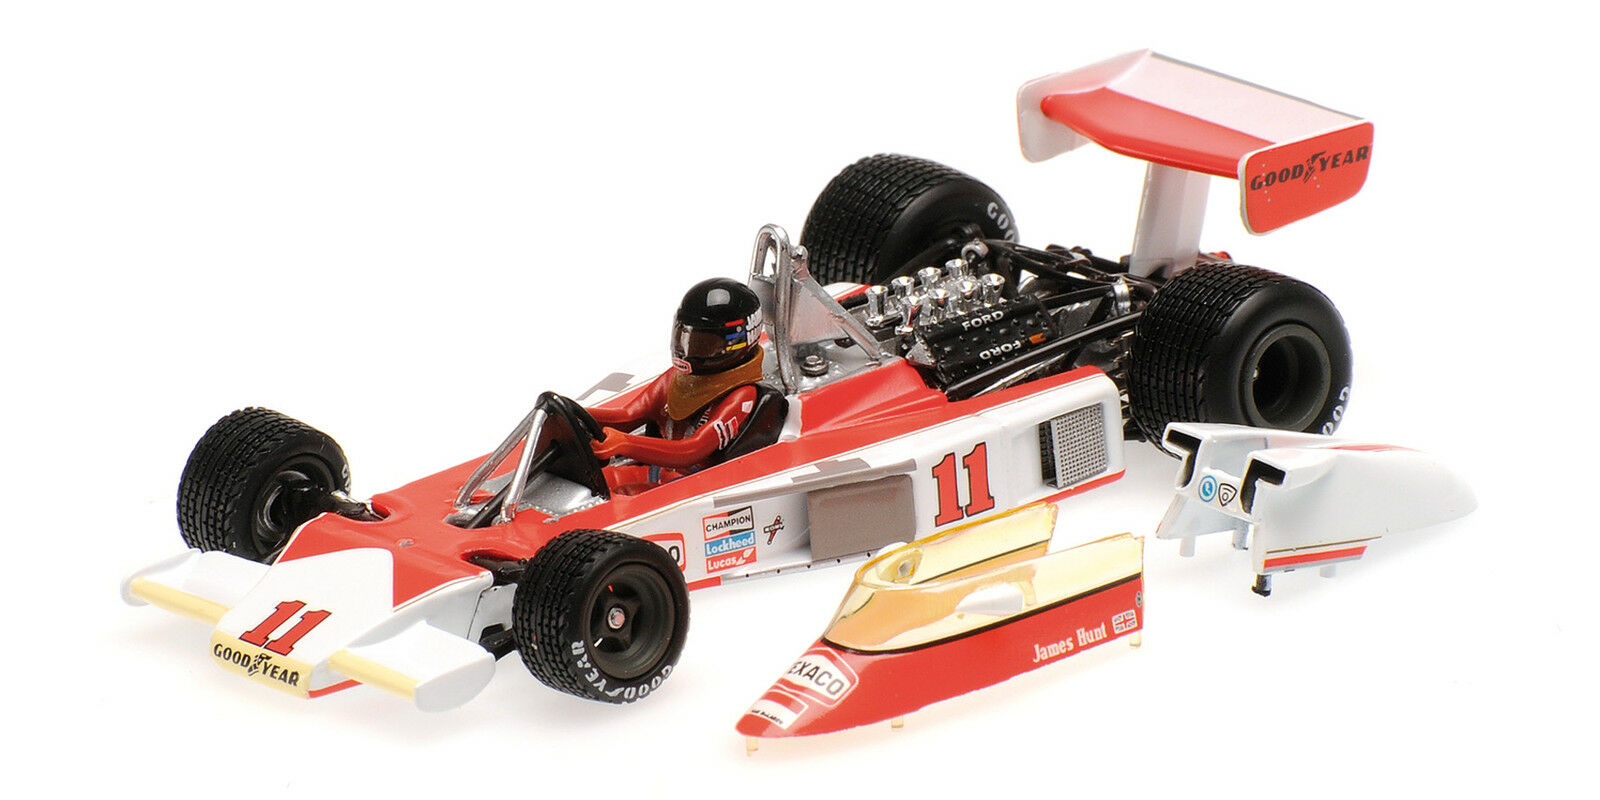 Mclaren ford m23 Hunt w. Champion 1976 w. Engine 530764391 Minichamps 1 43 New